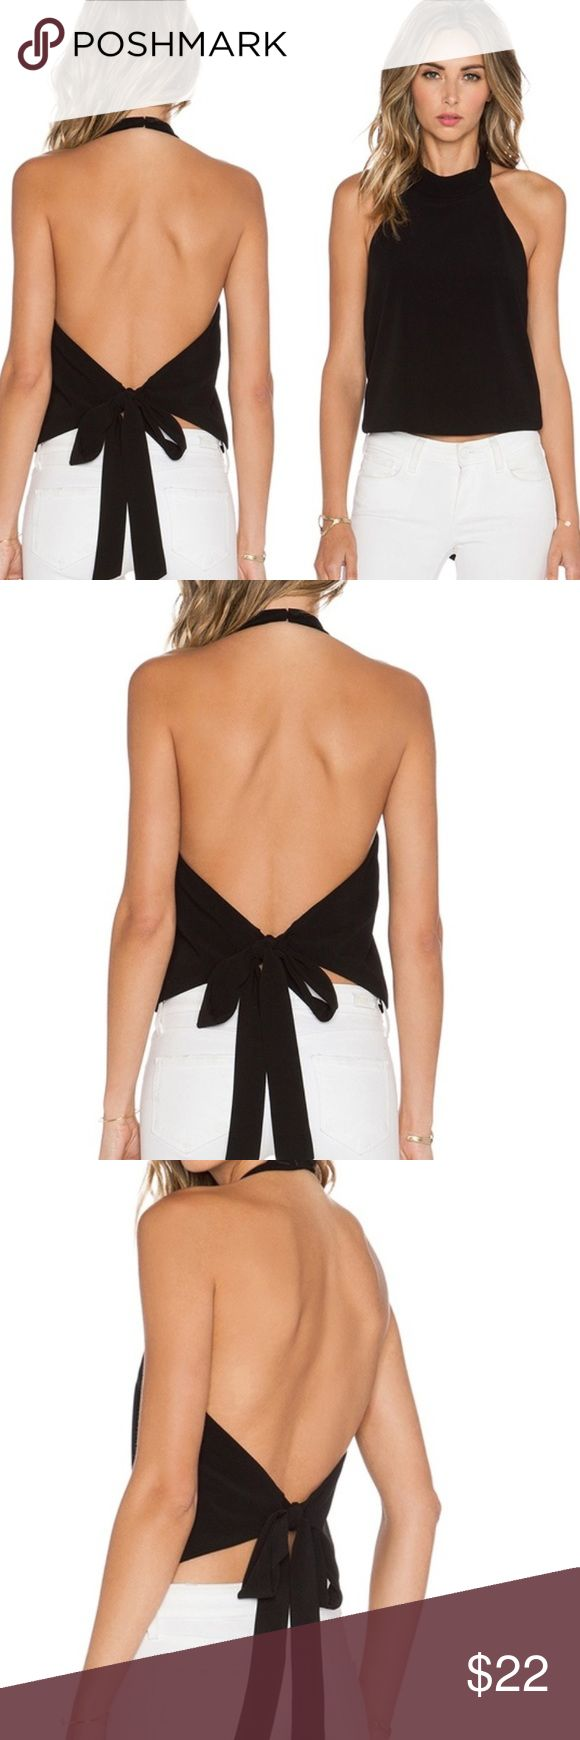 Backless Halter Blouse Chic Polyester top, buttons around the neck and ties around the back Tops Blouses